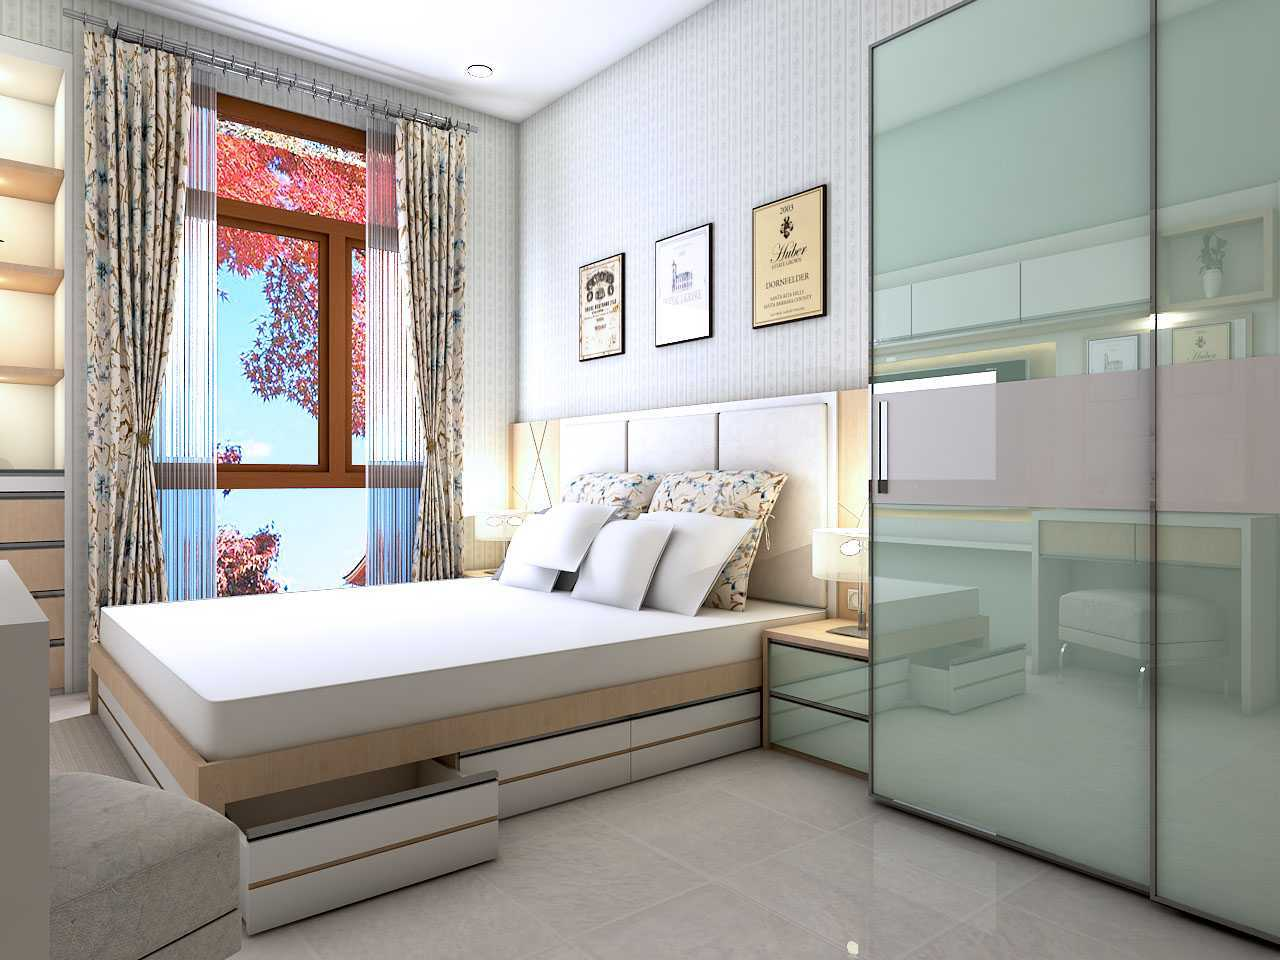 bed room furniture design. Arteta Interior Design \u0026 Furniture Master Bed Room Modern Minimalis Surakarta, Kota Jawa